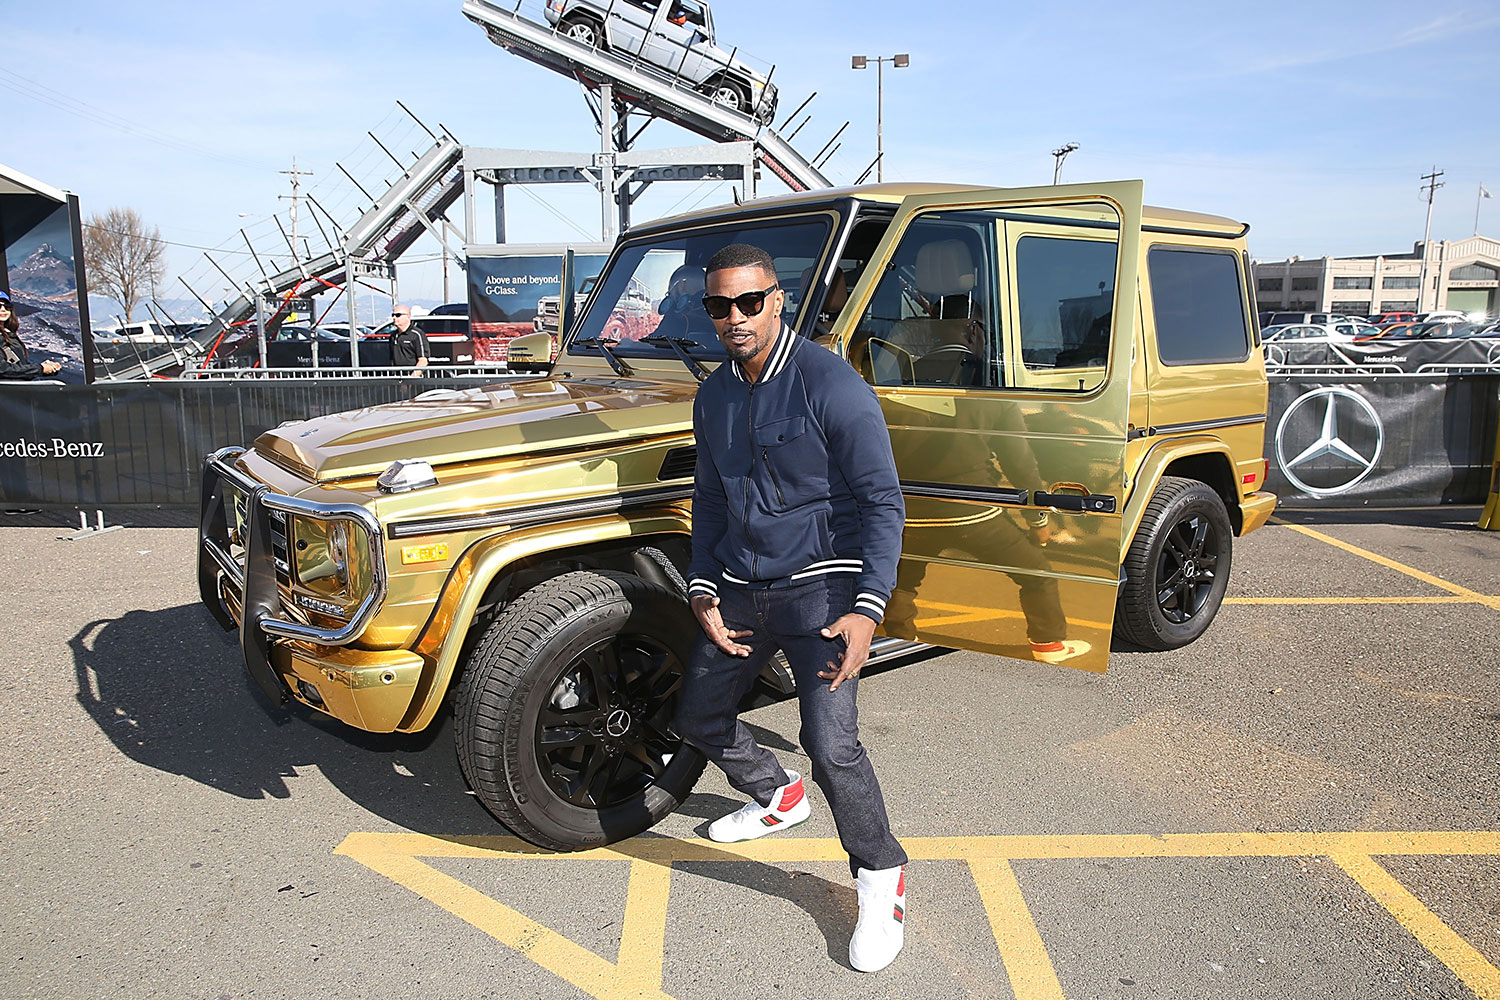 The Mercedes-Benz G550 Special Edition In Celebration Of Super Bowl 50 2